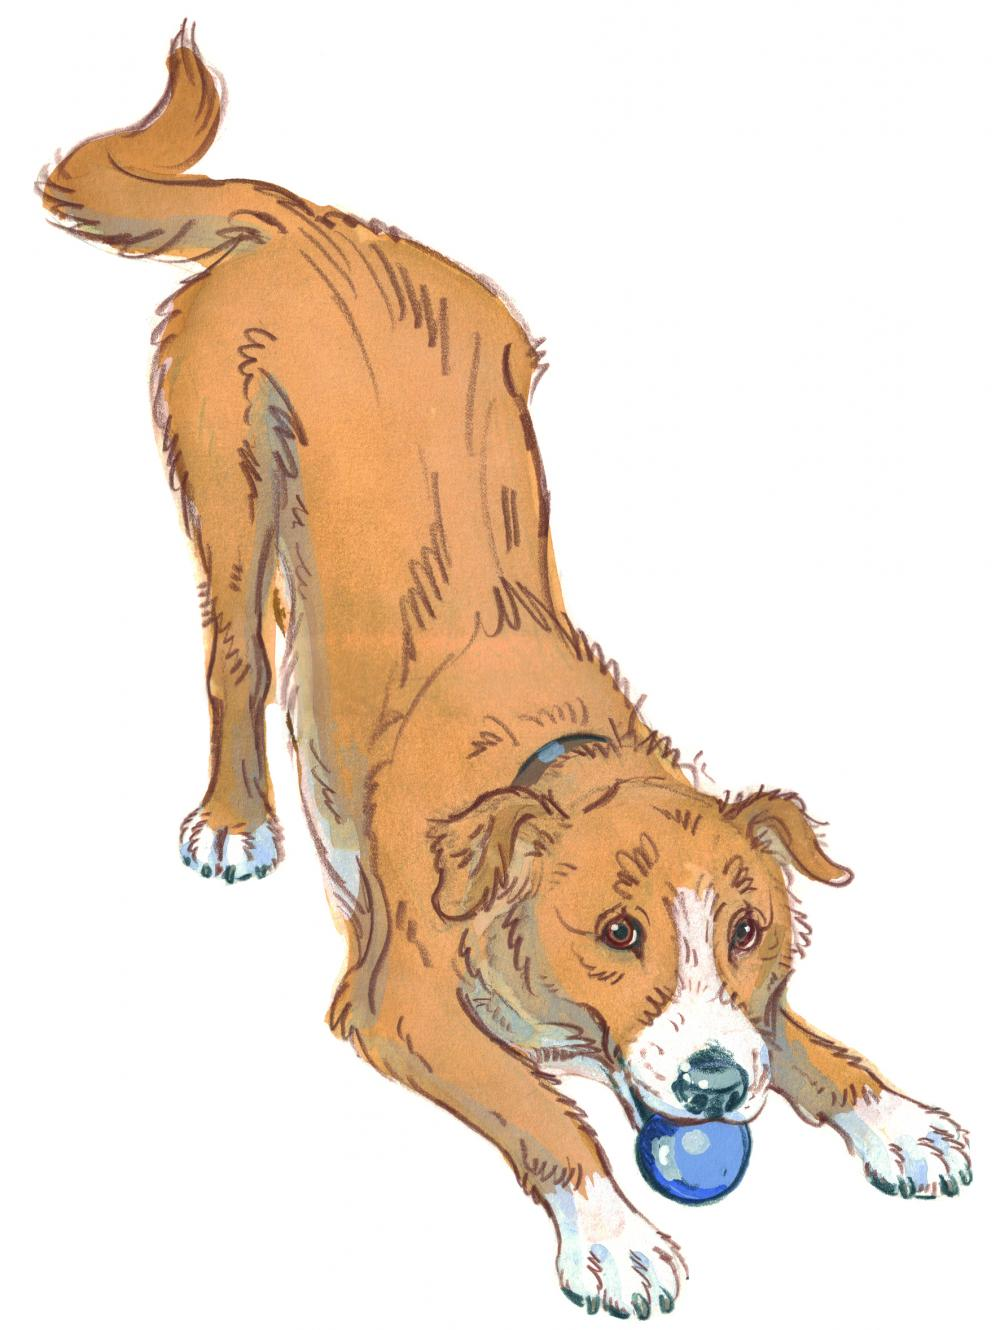 Drawing of a dog in a play bow pose looking happy and ready to play